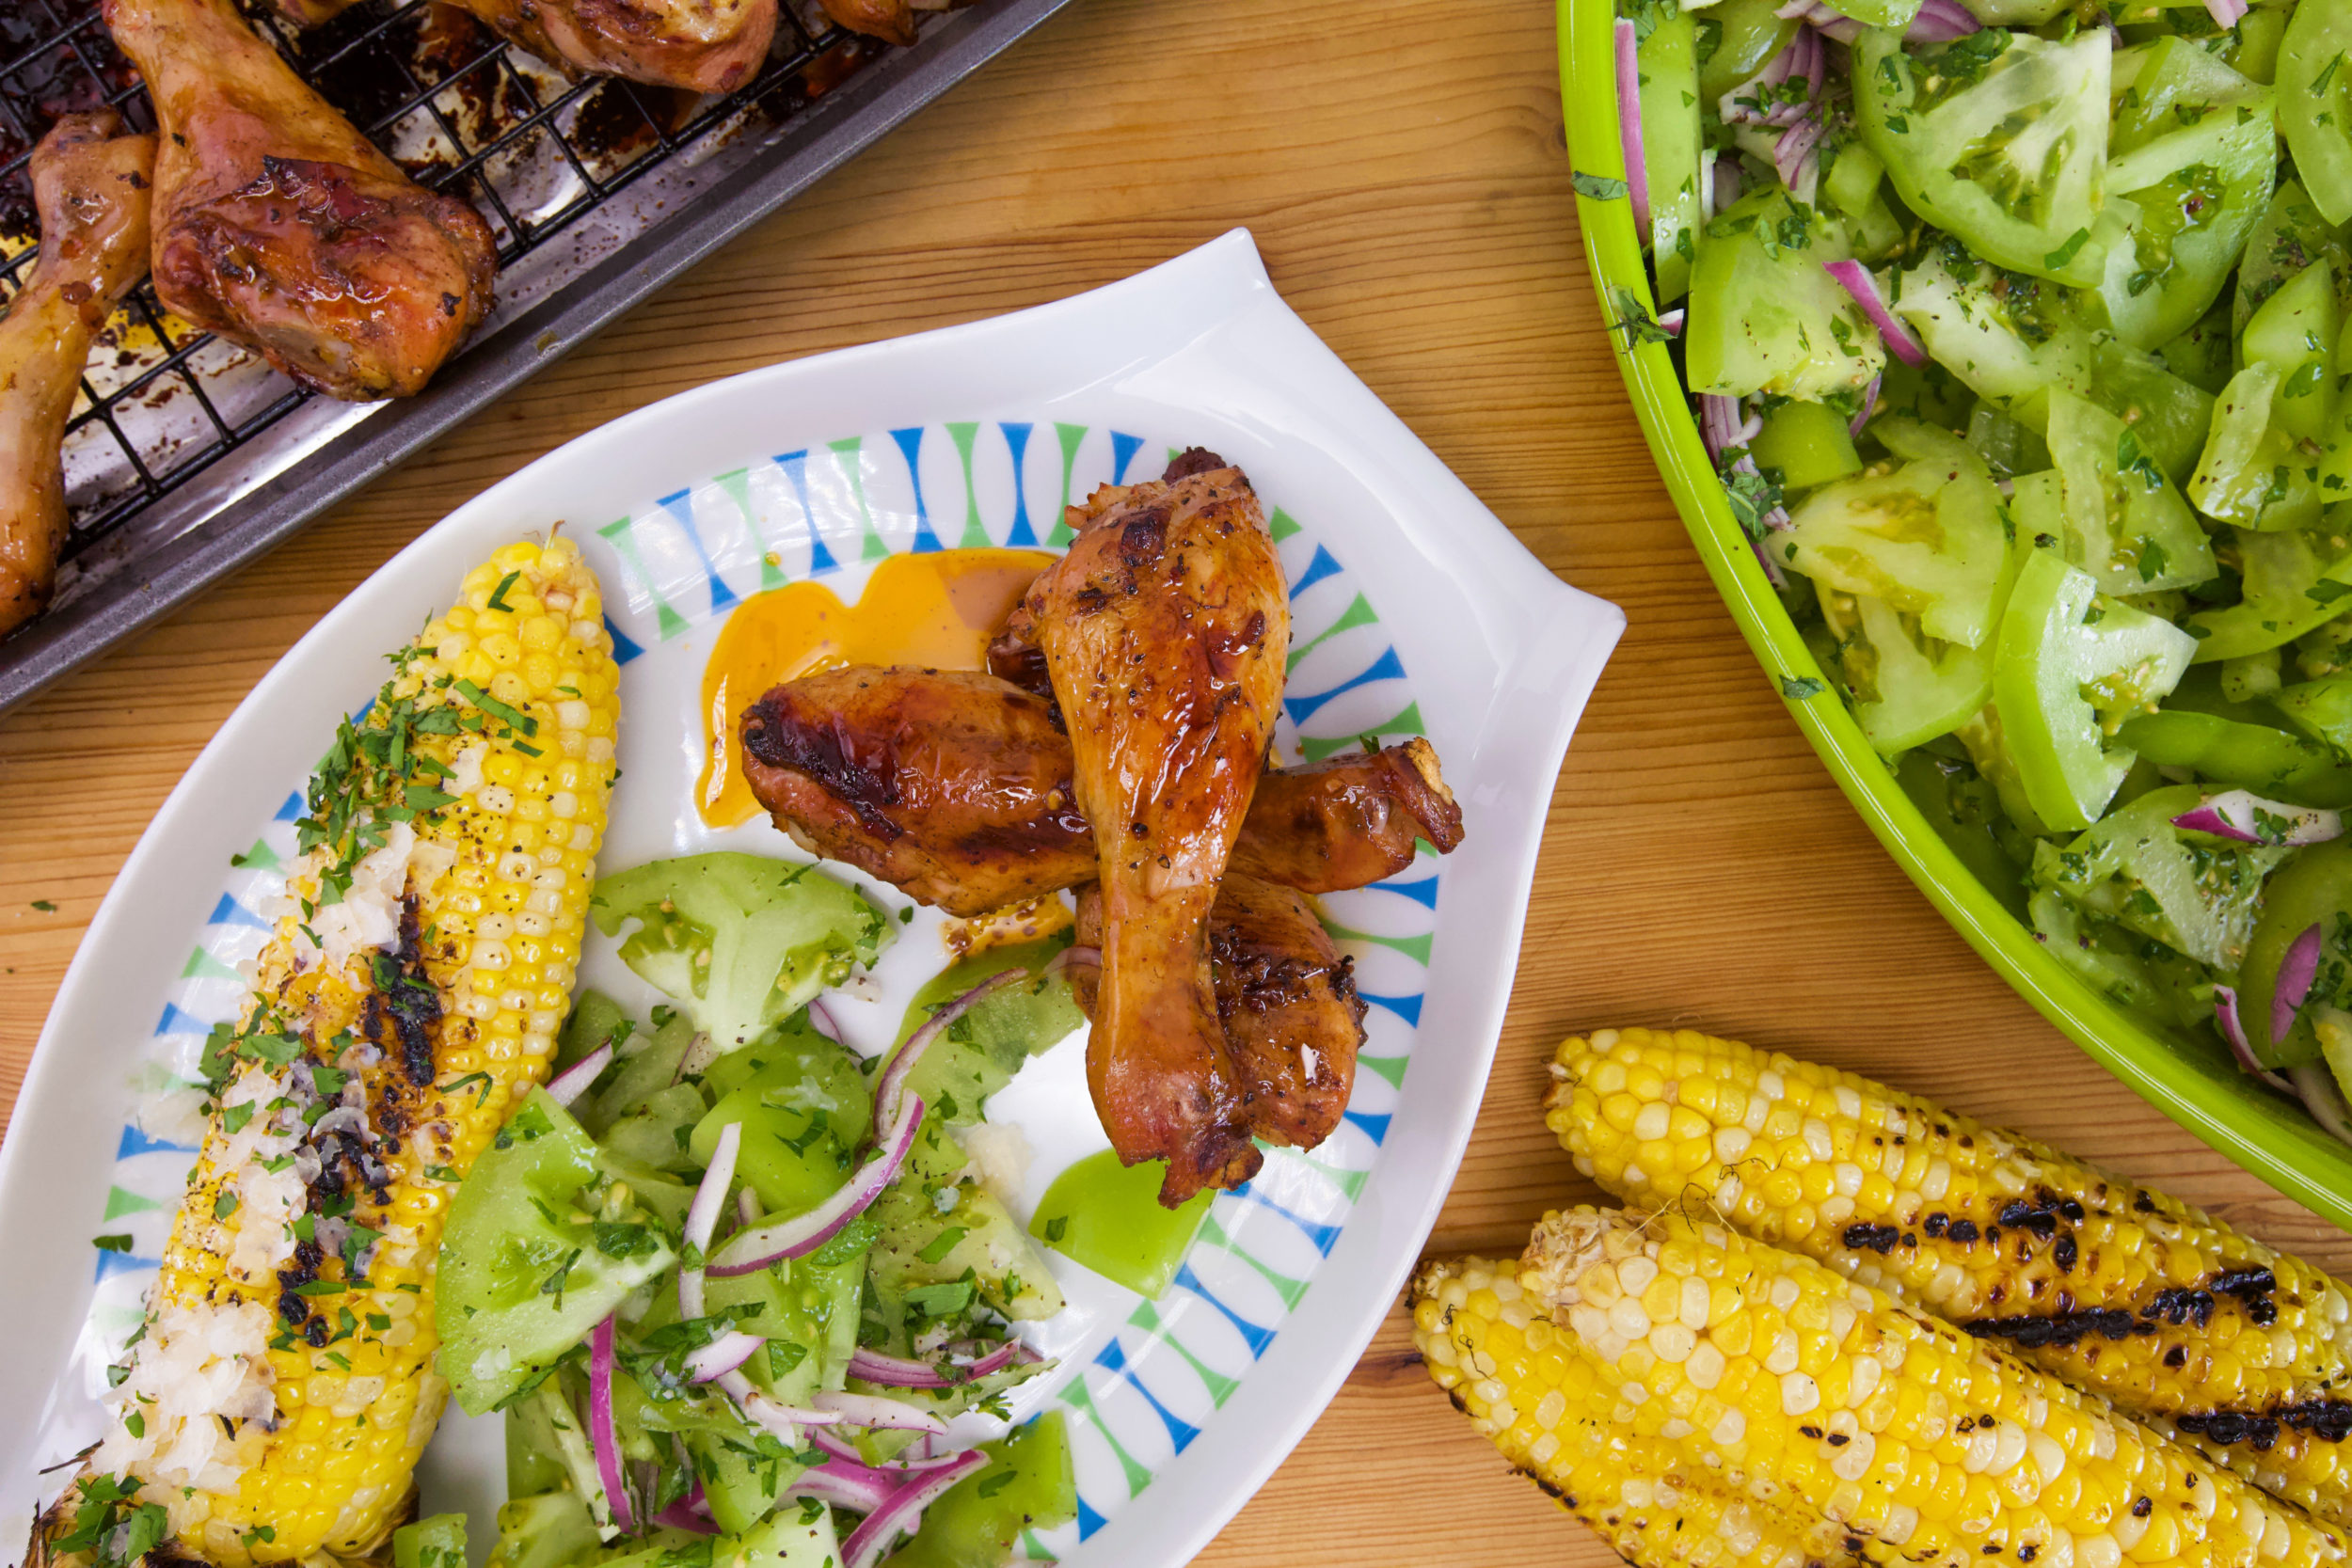 Rachael's Balsamic-Marinated Chicken Legs, Green Tomato Salad and Corn with Garlic Butter